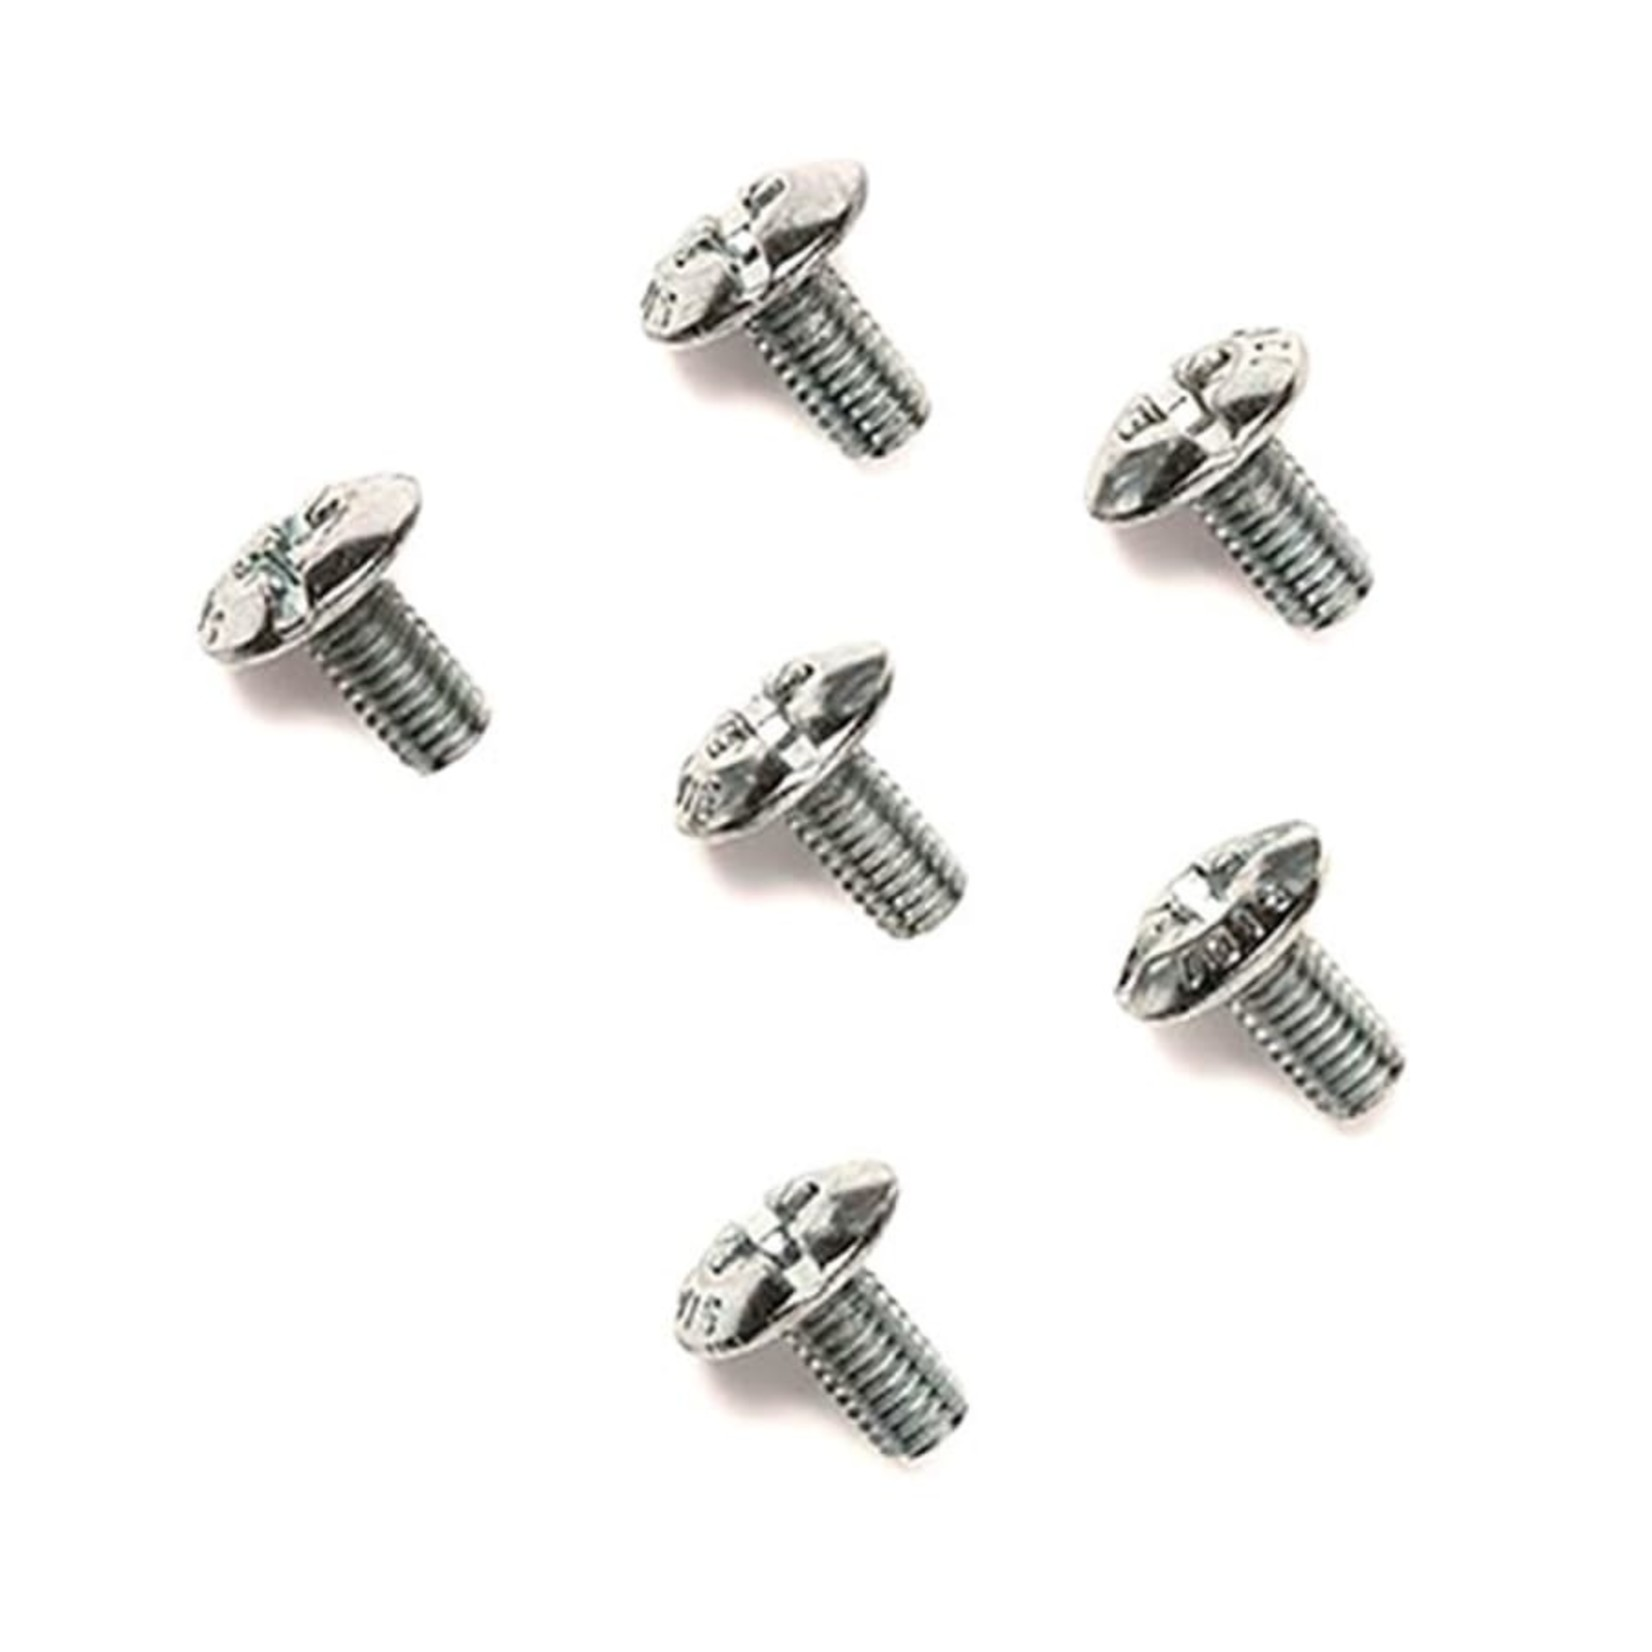 Look Cleat Bolts 12mm each